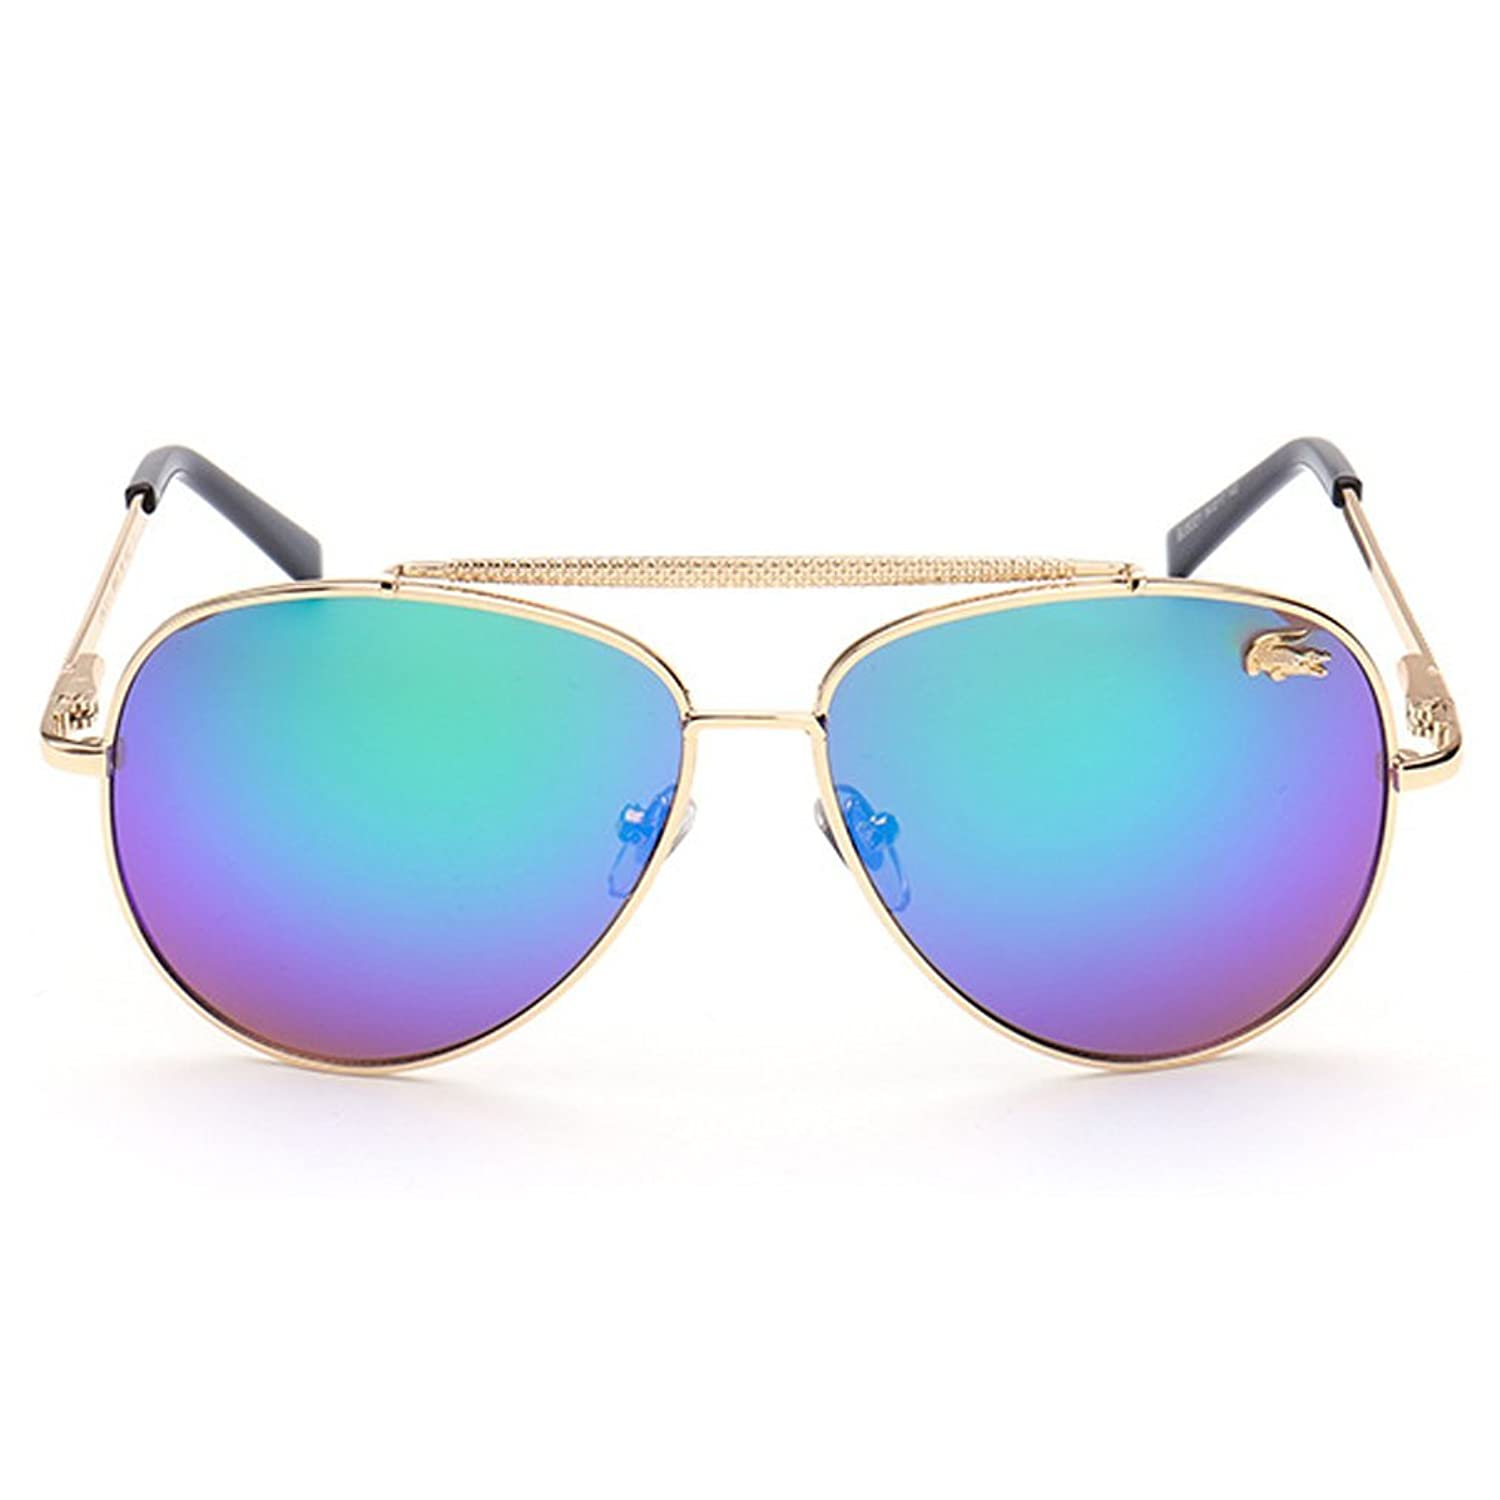 A-Royal Fashion Classic Big Frame Personality Aviator Style Polarized Driving Sunglasses